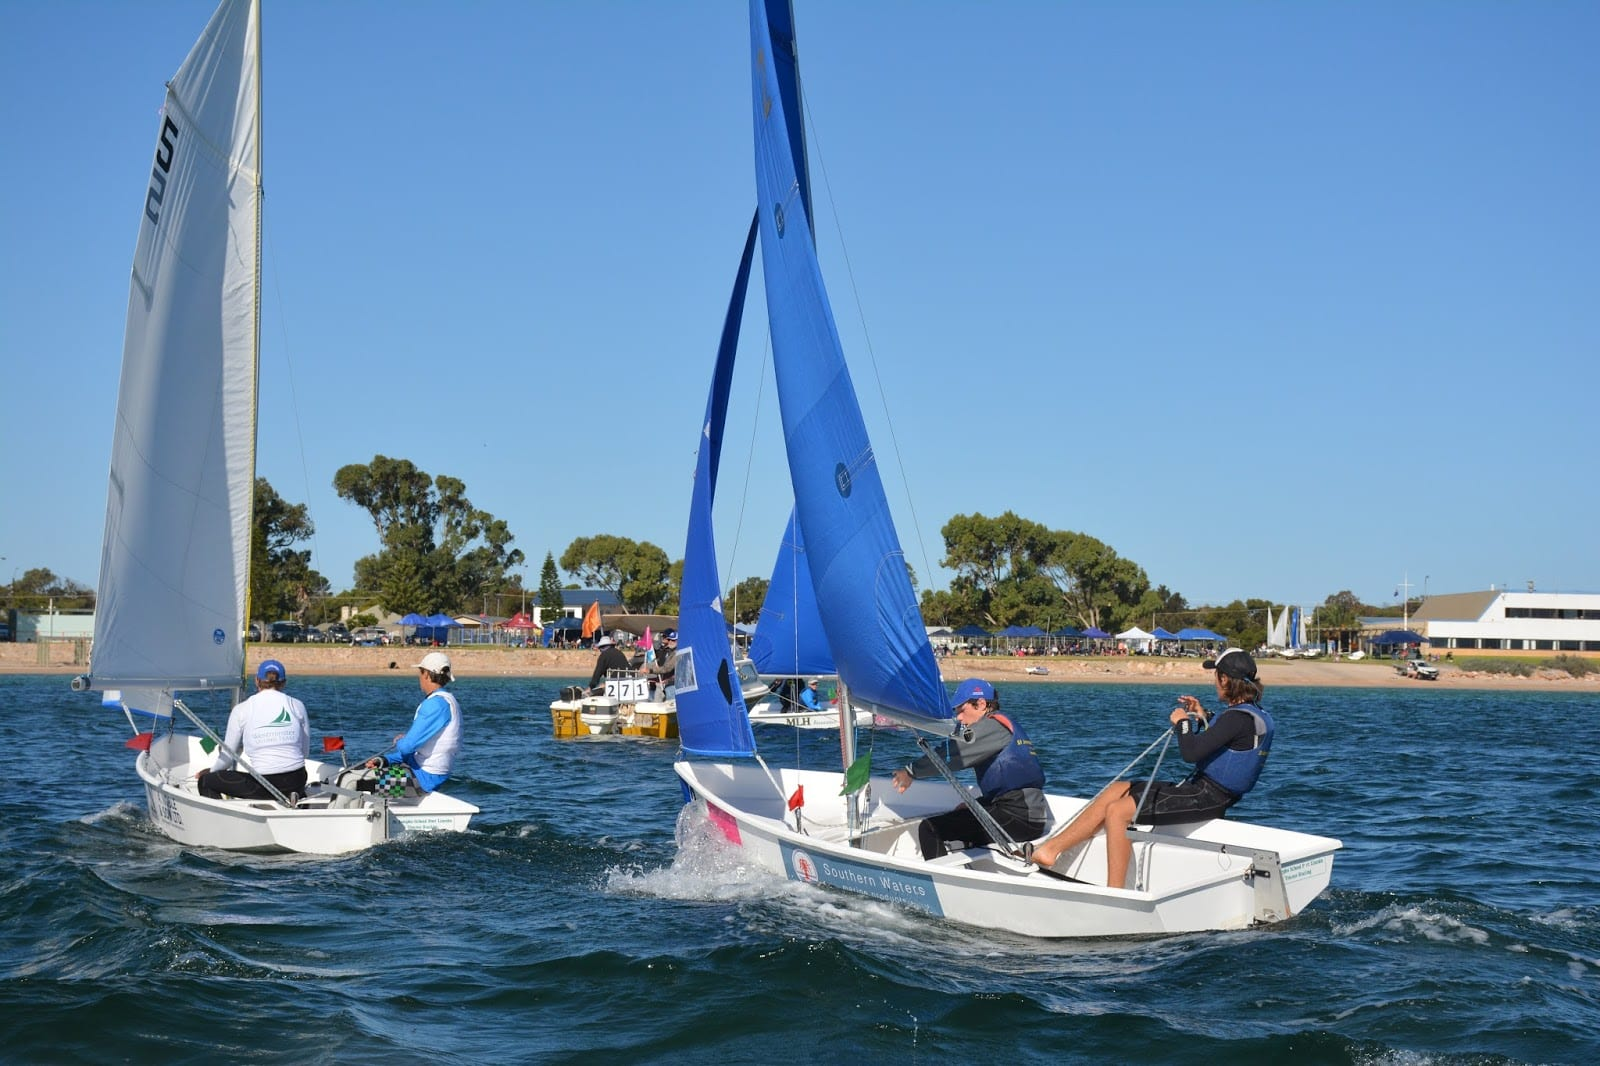 Four-way tie after first day of racing